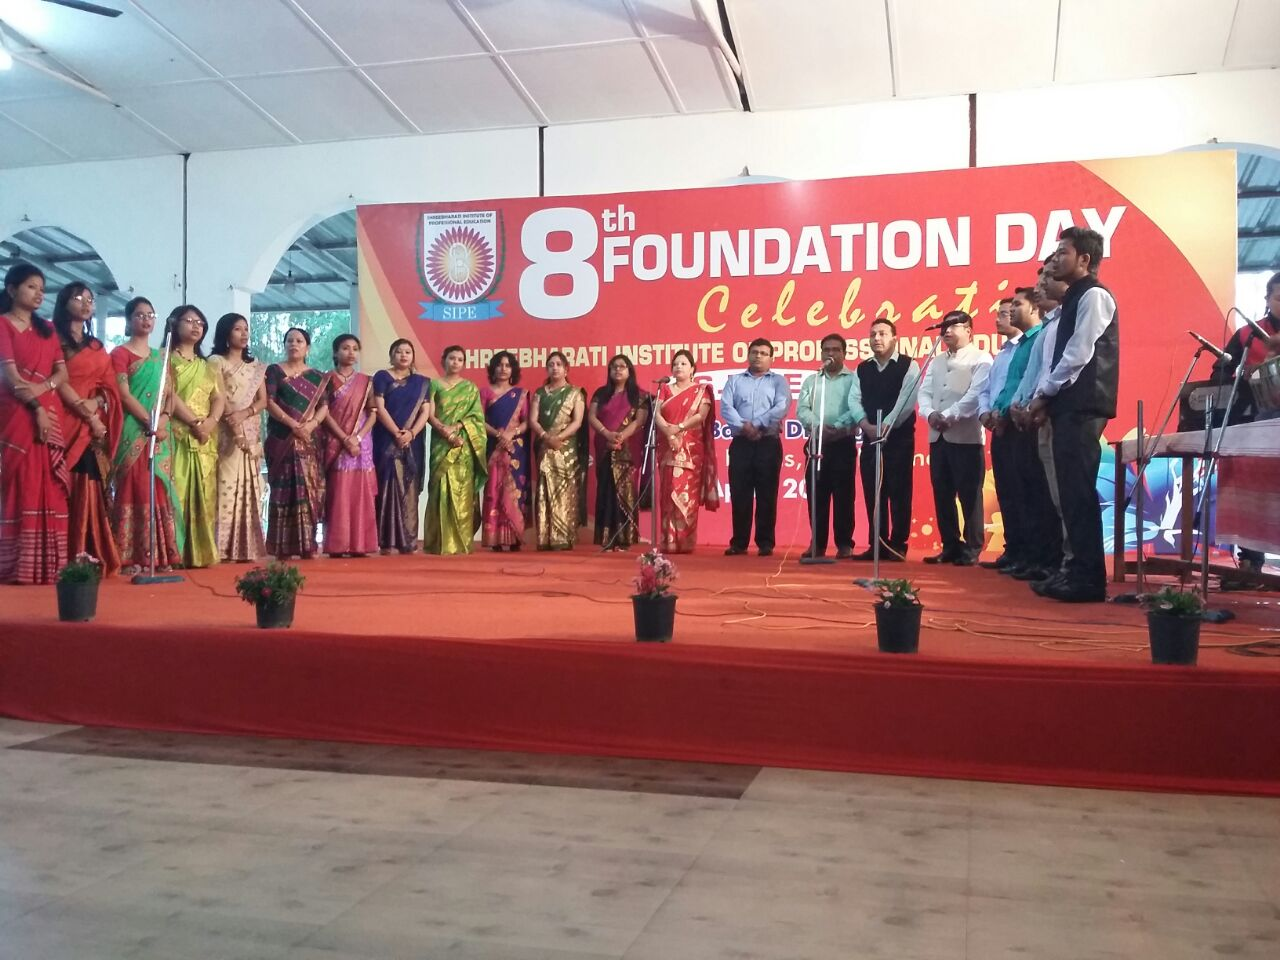 Chorus performed by the Faculty of SIPE Group of Institutions on the occasion of 8th Foundation Day celebrations